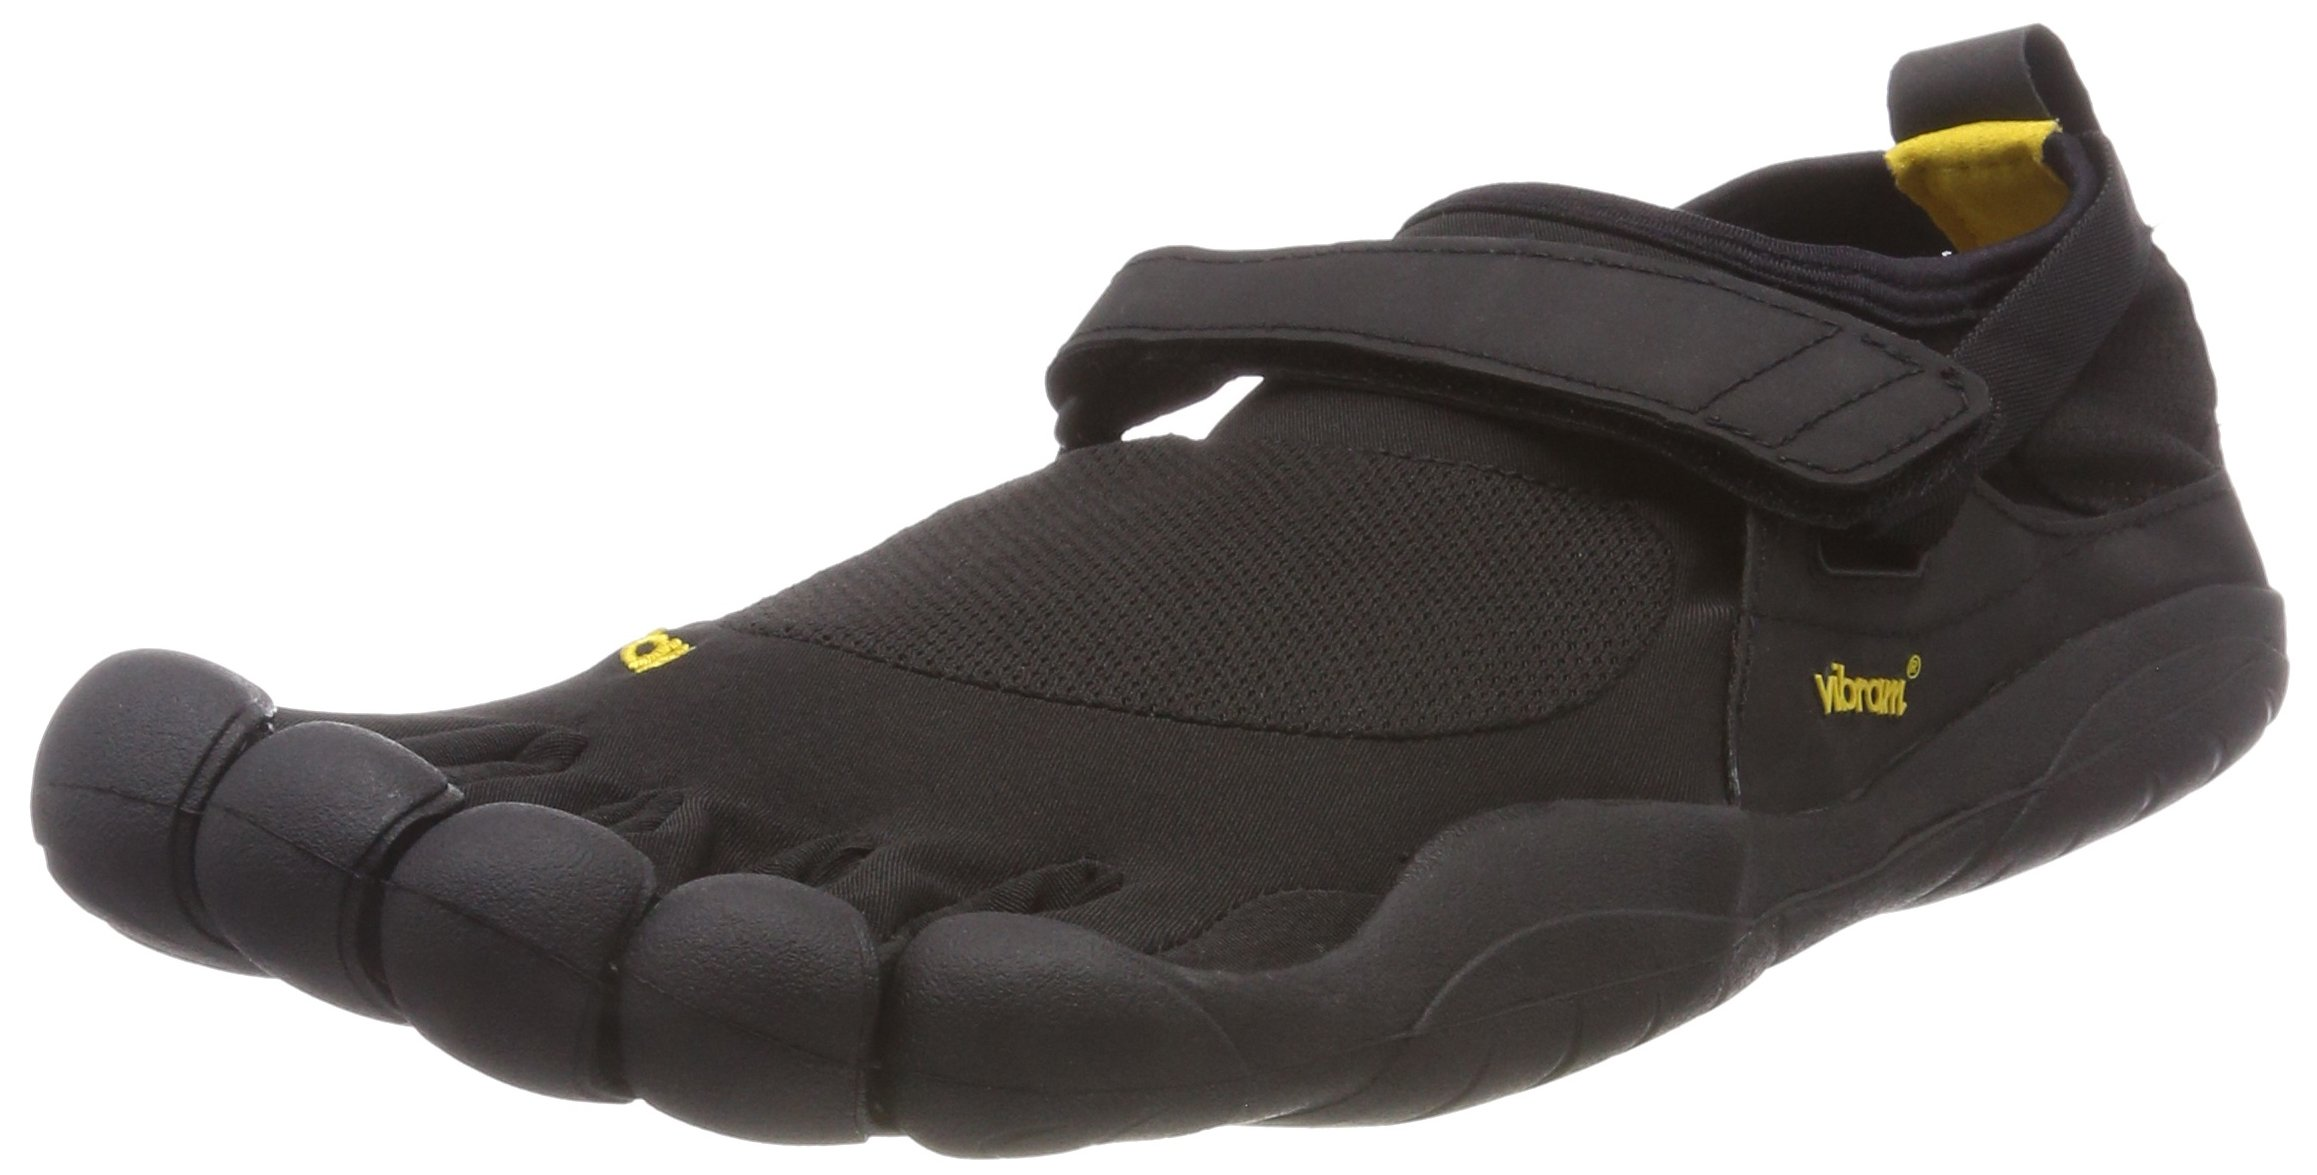 Vibram Men's KSO Trail Running Shoe, Black, 44 EU/10.5-11 M US